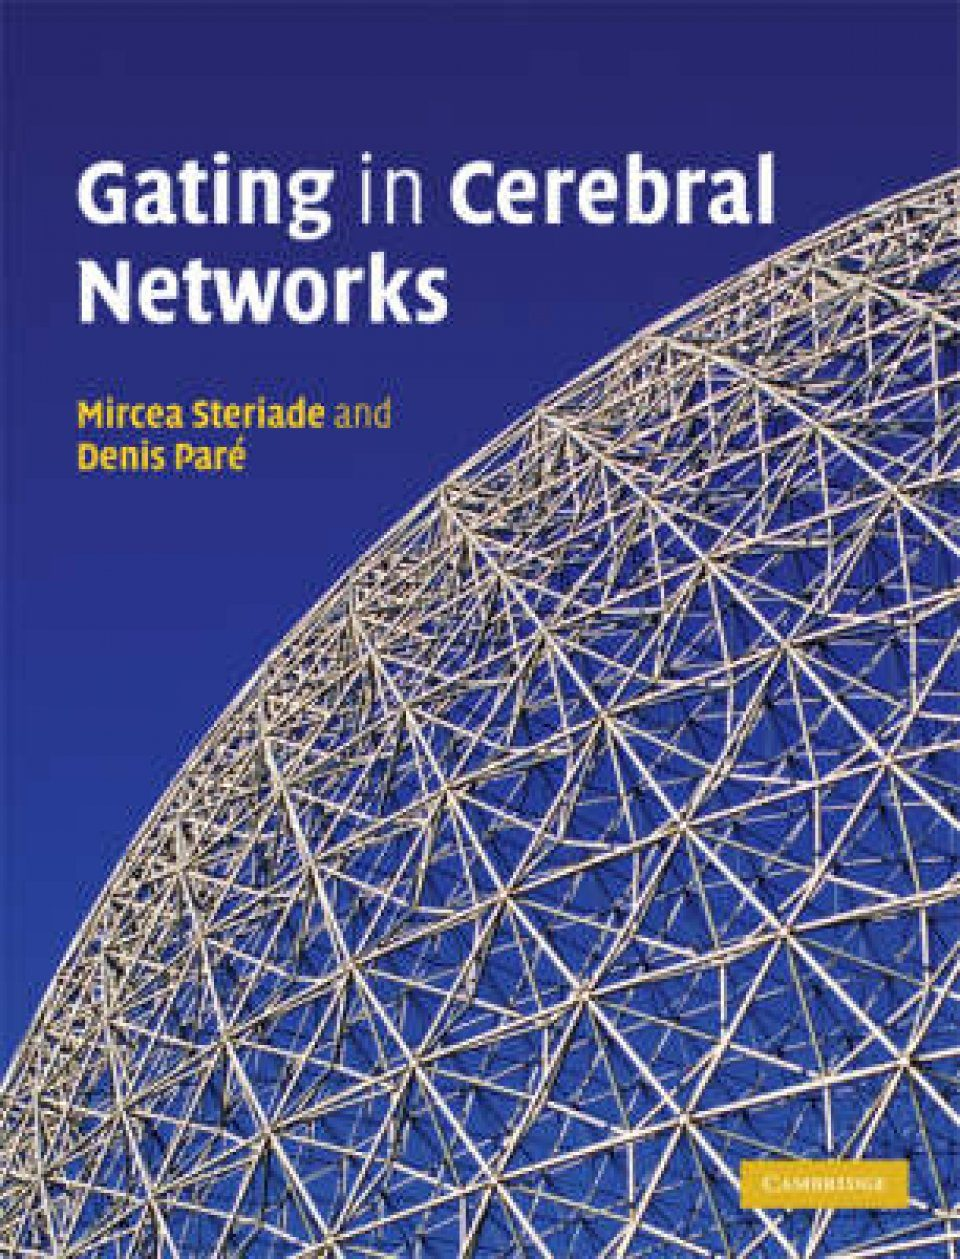 Gating in Neuronal Networks